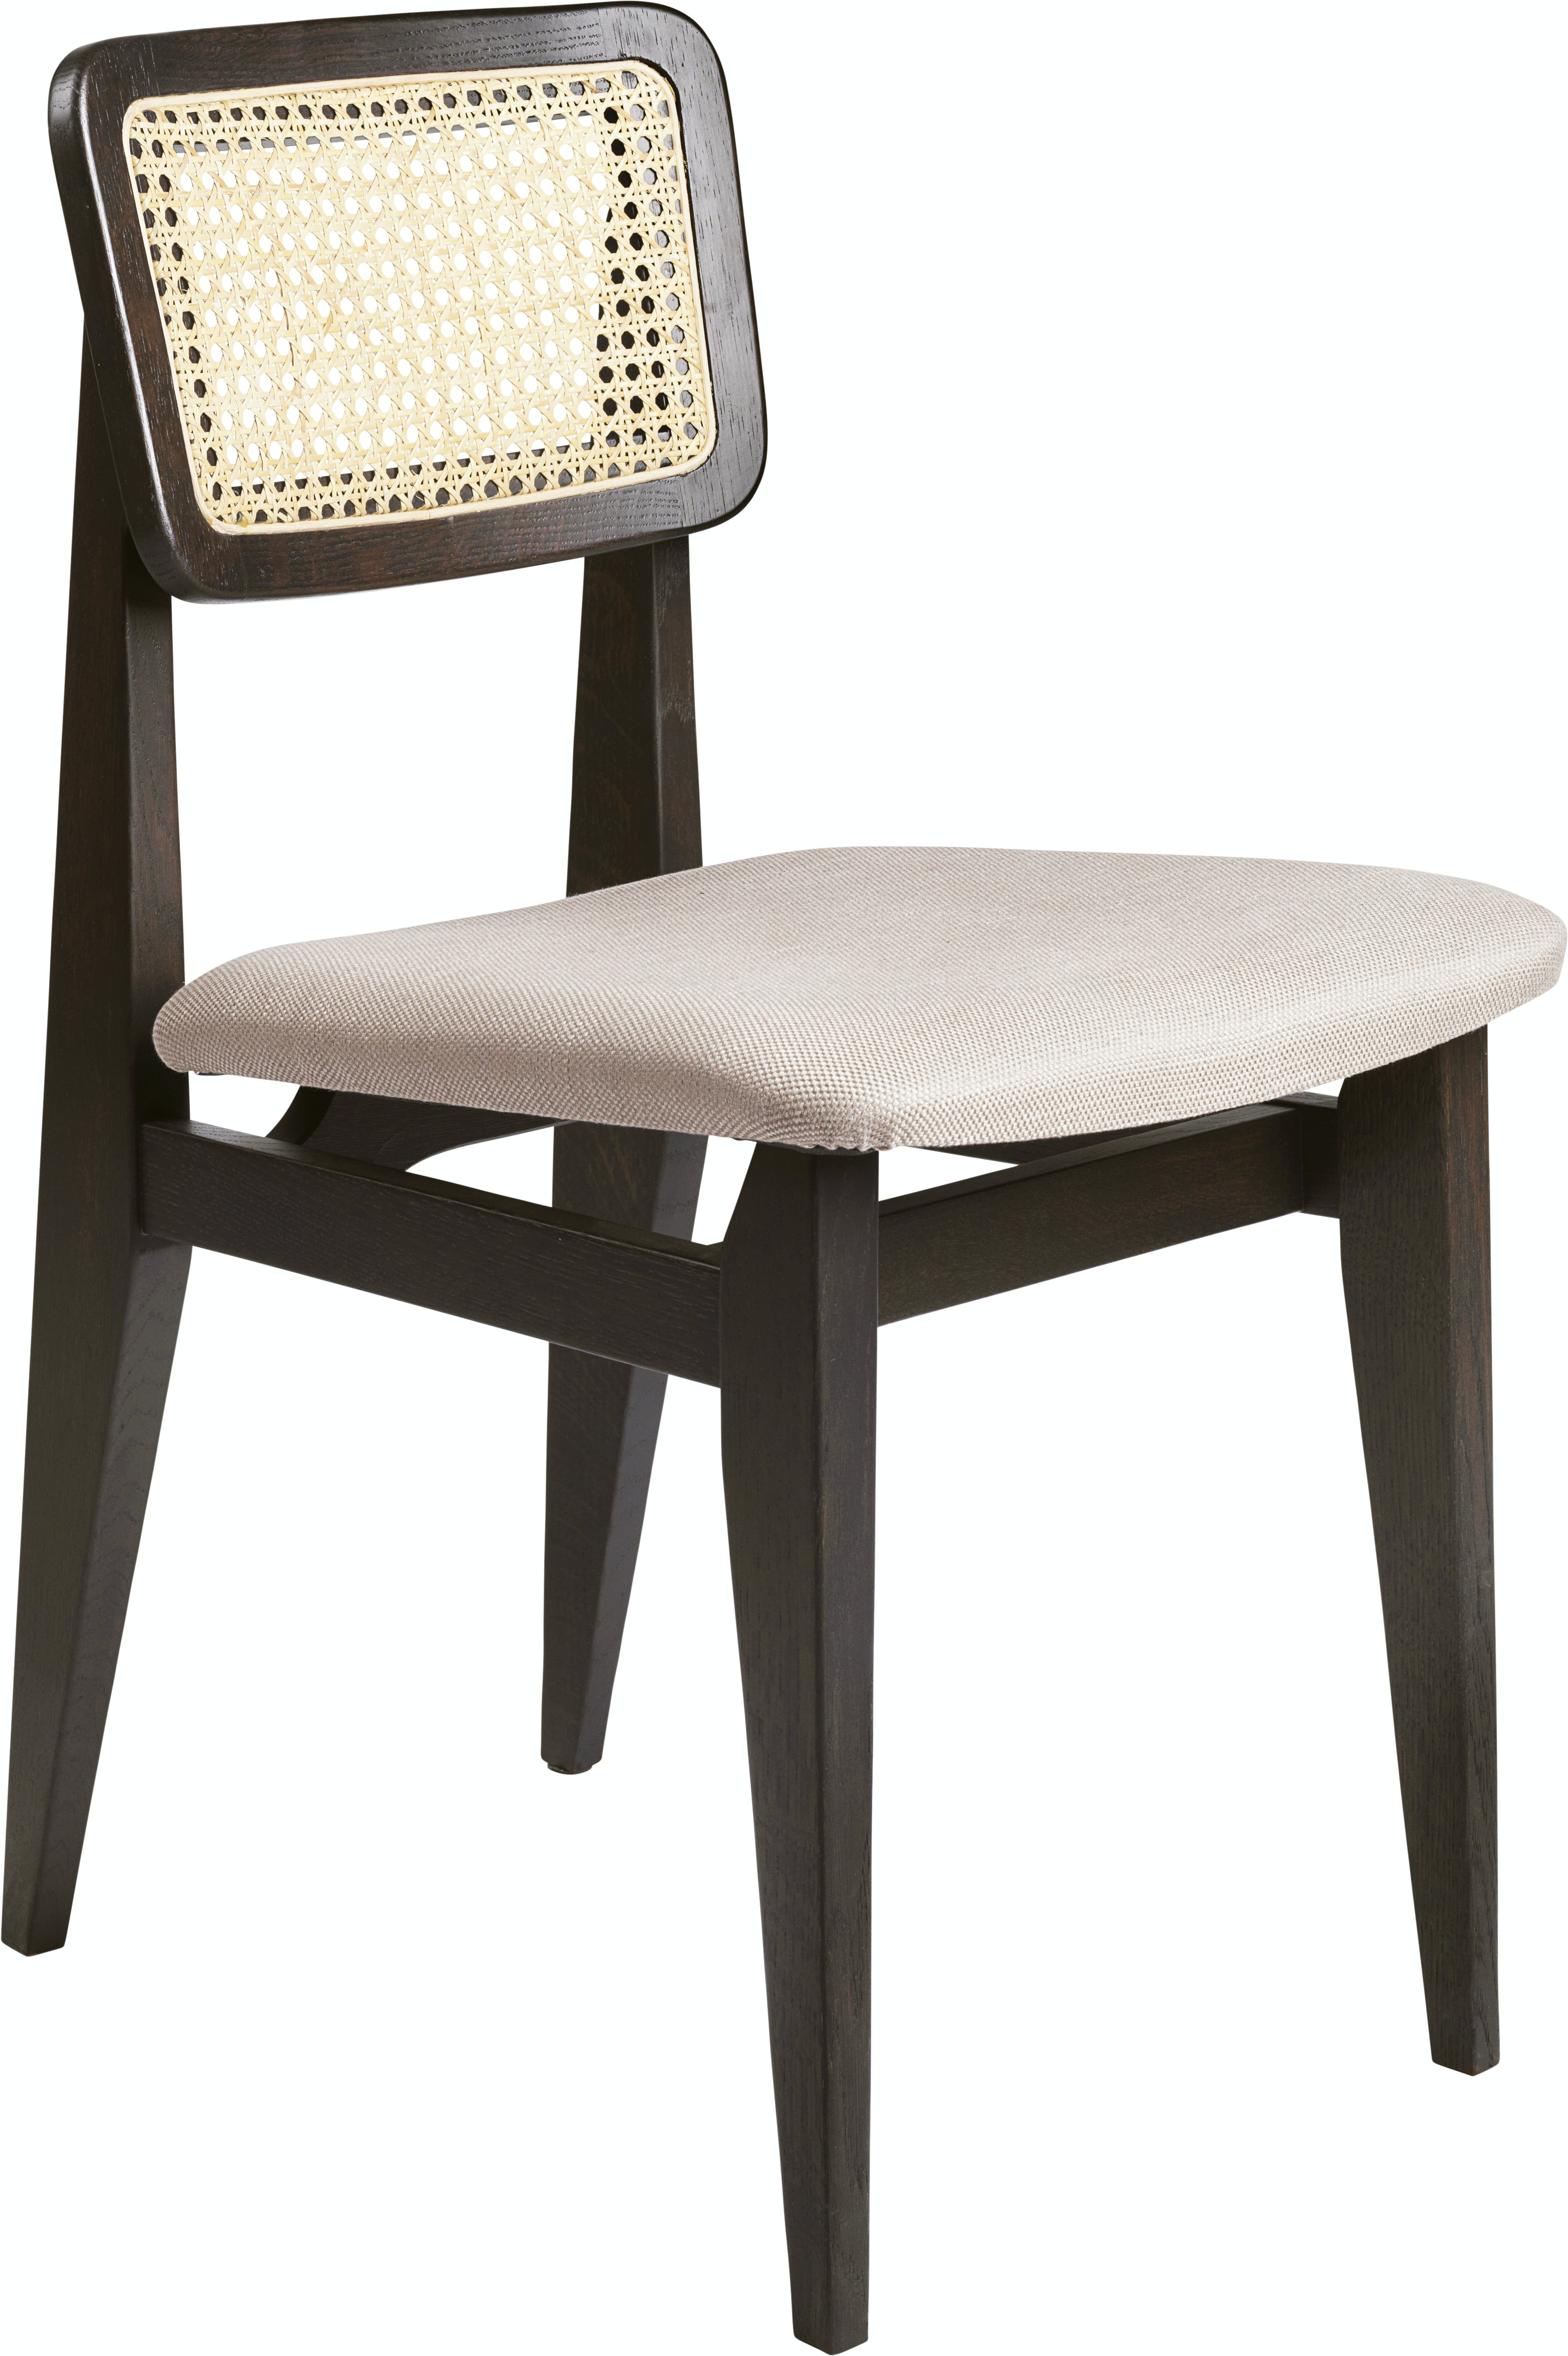 C Chair Dining Chair Wood Seat Upholstered French Cane Brown Black Stained Oak Dedar Sinequanon 030 Ficelle F3 Q